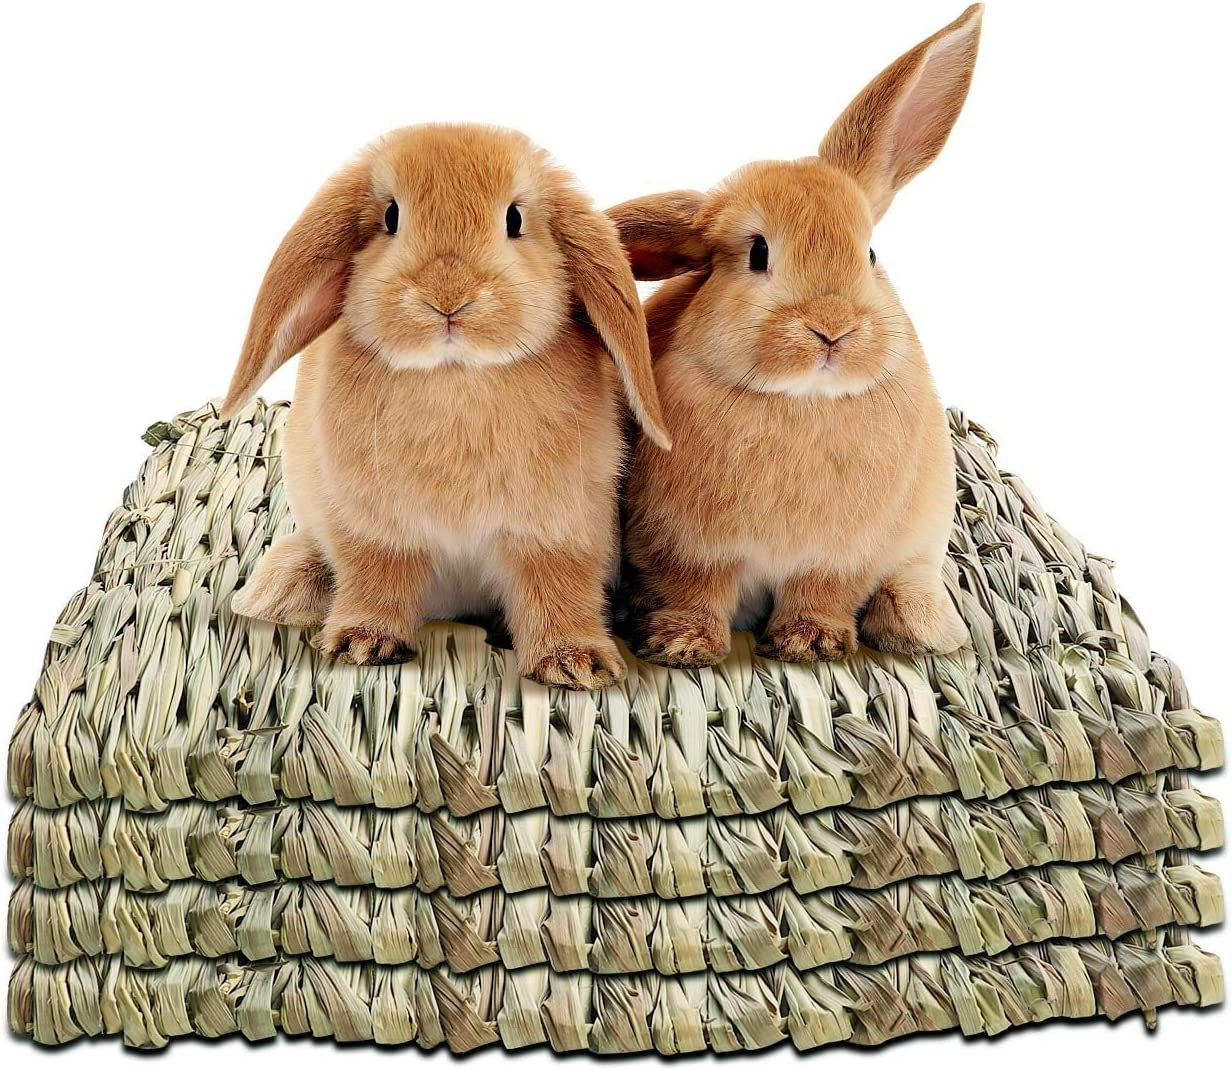 WUHOSTAM 4 Pack Grass Mat Raleigh Mall for Natural Bed Rabbits Hay Woven Max 71% OFF